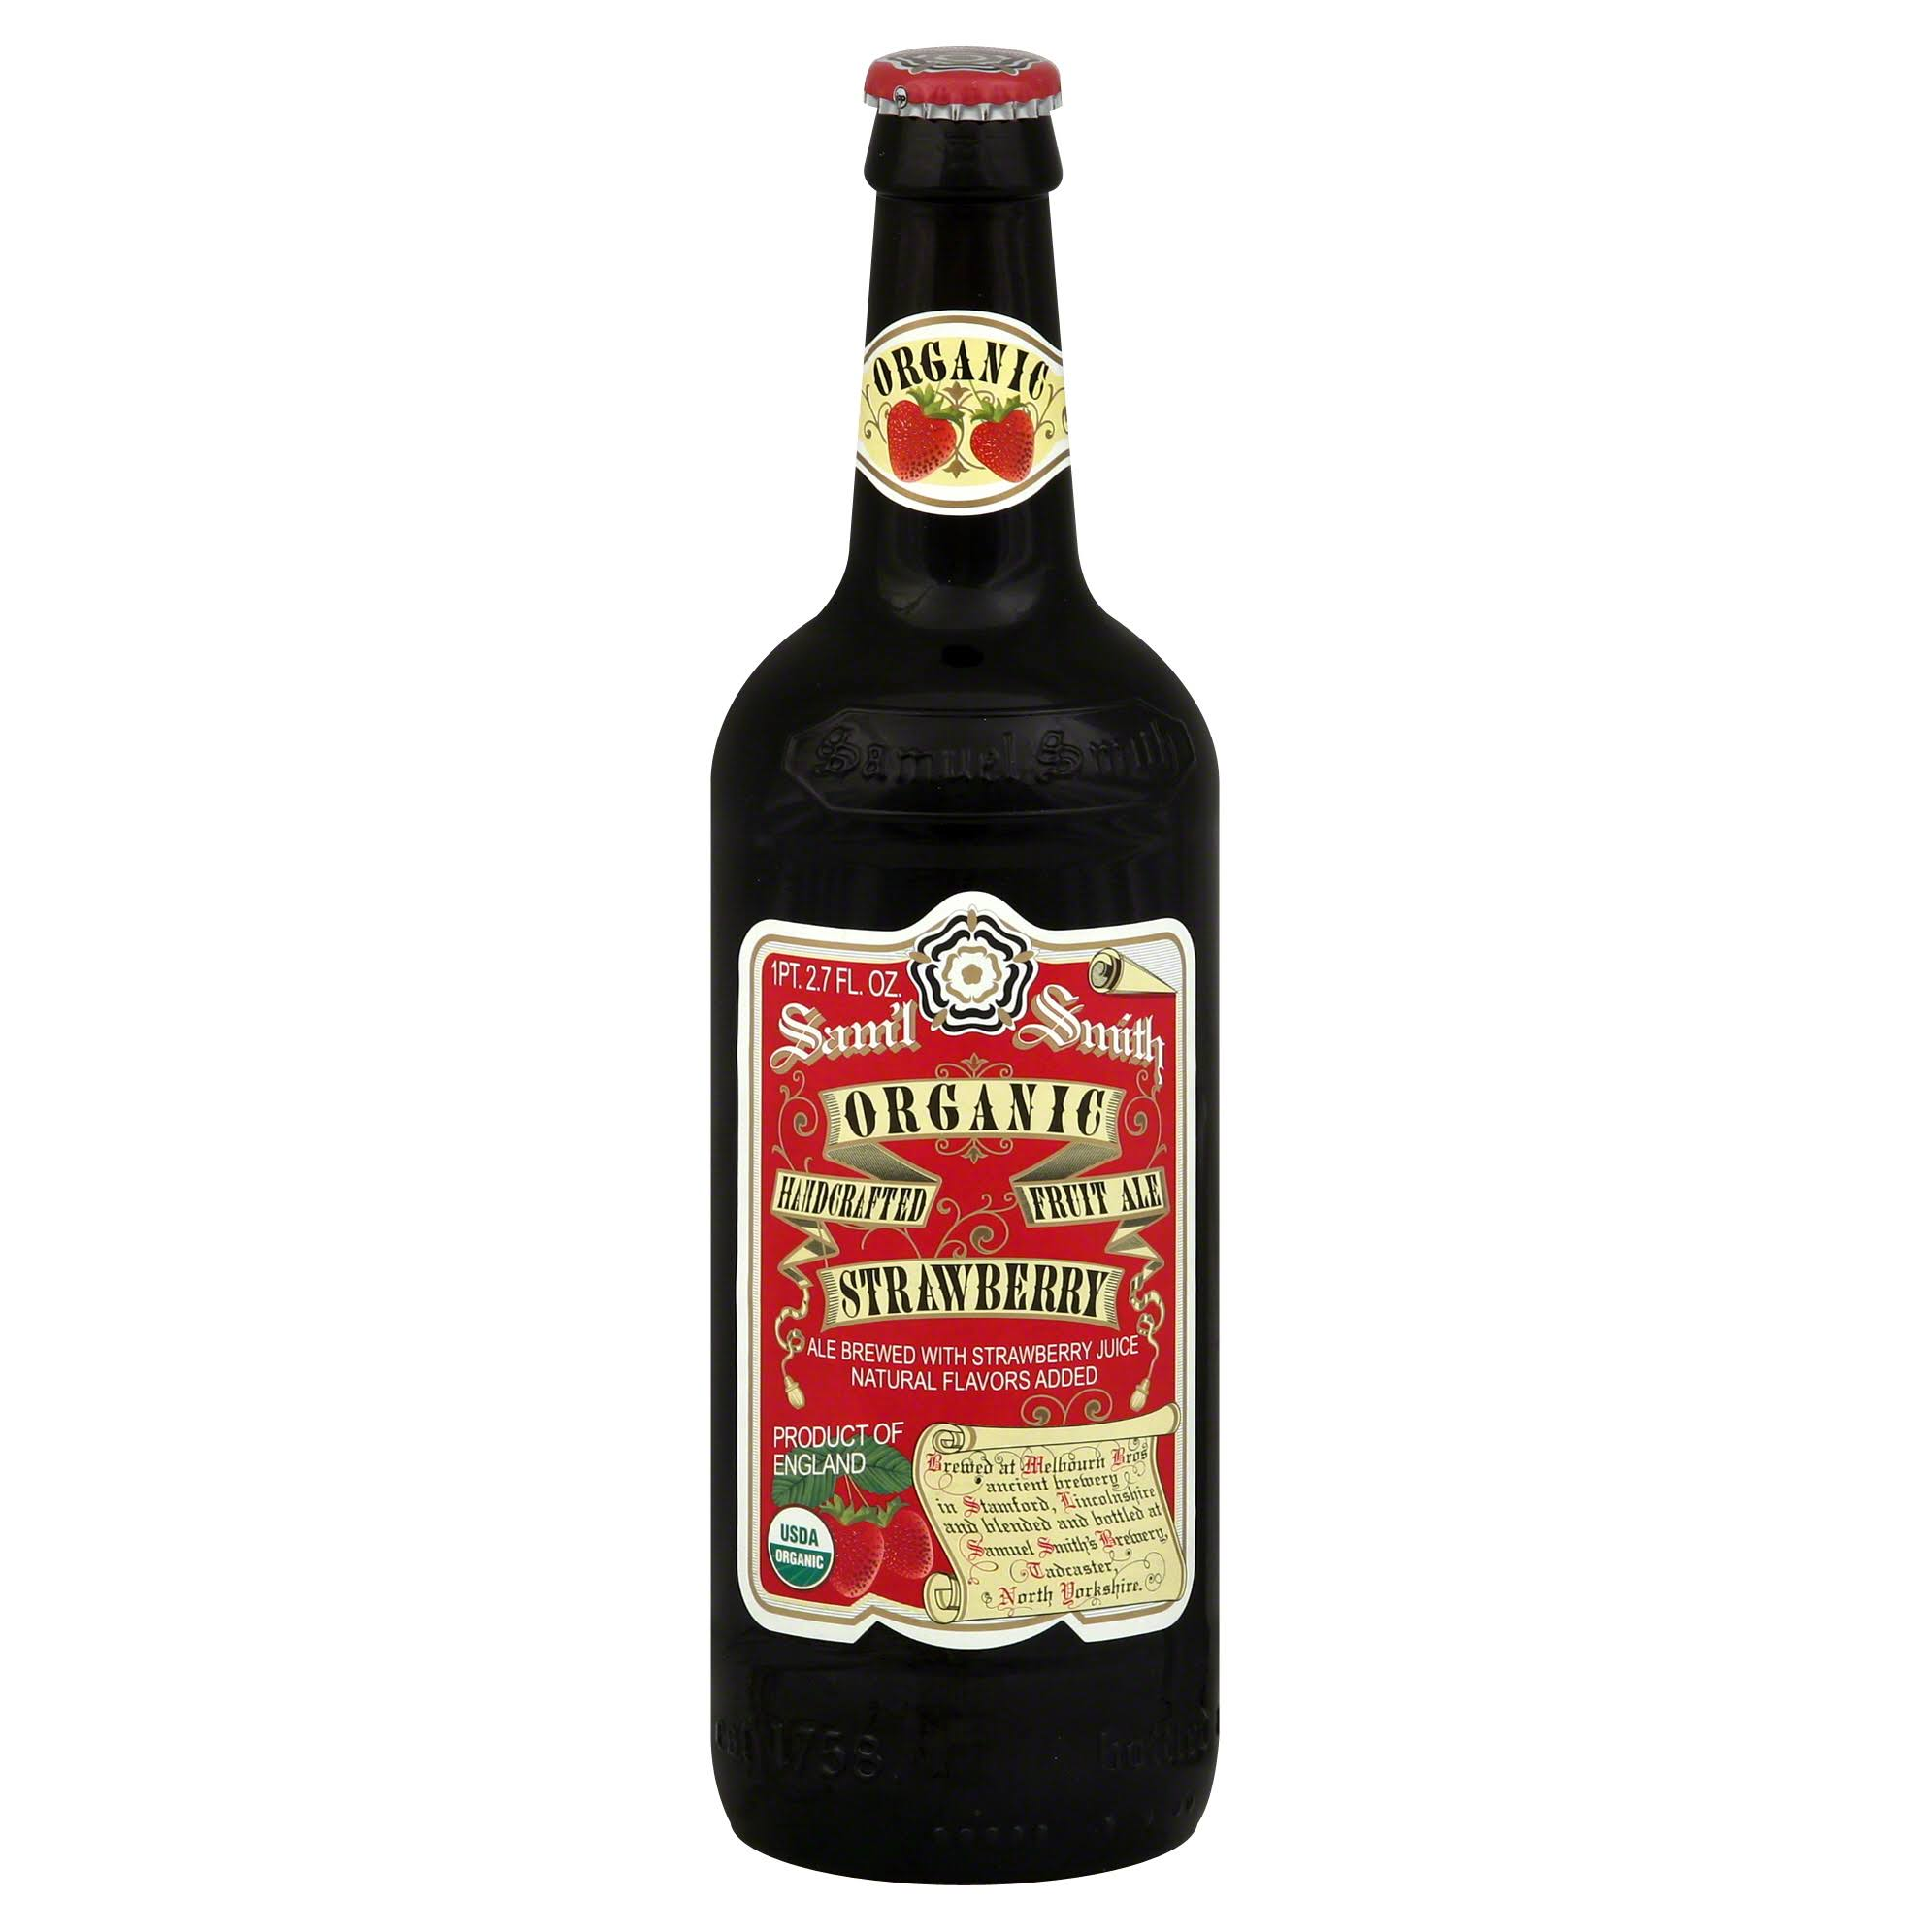 Samuel Smith Organic Strawberry Ale